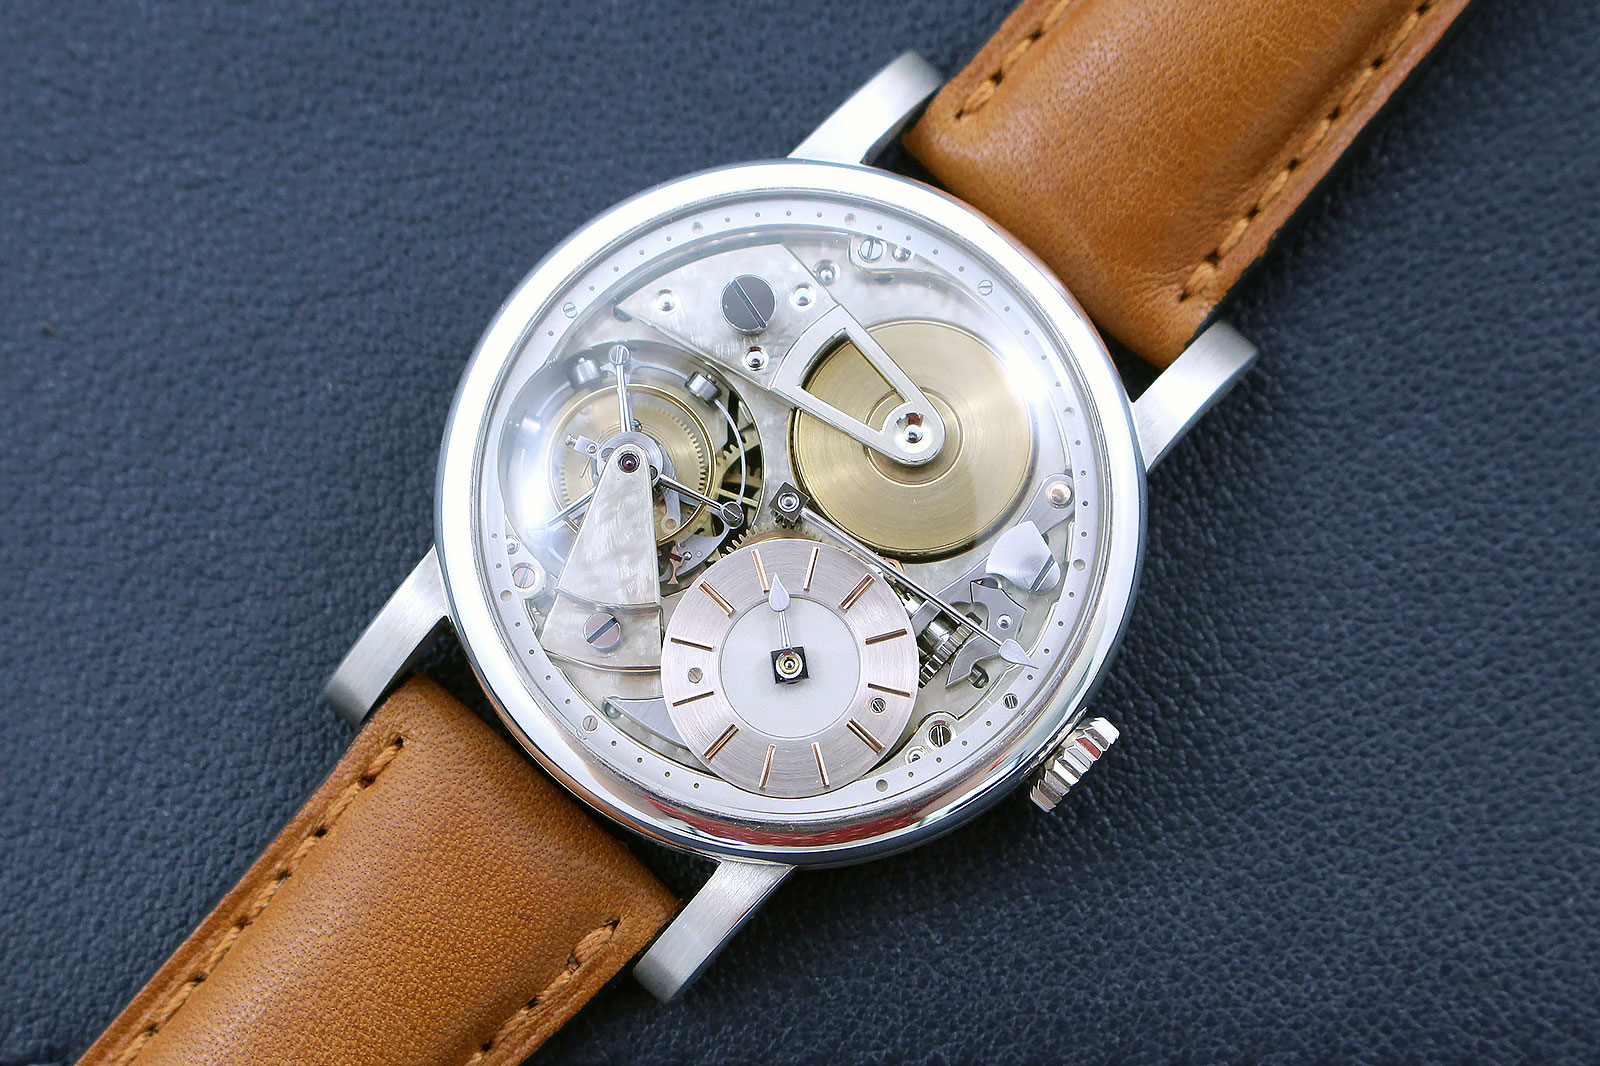 theo auffret tourbillon a paris watch 5